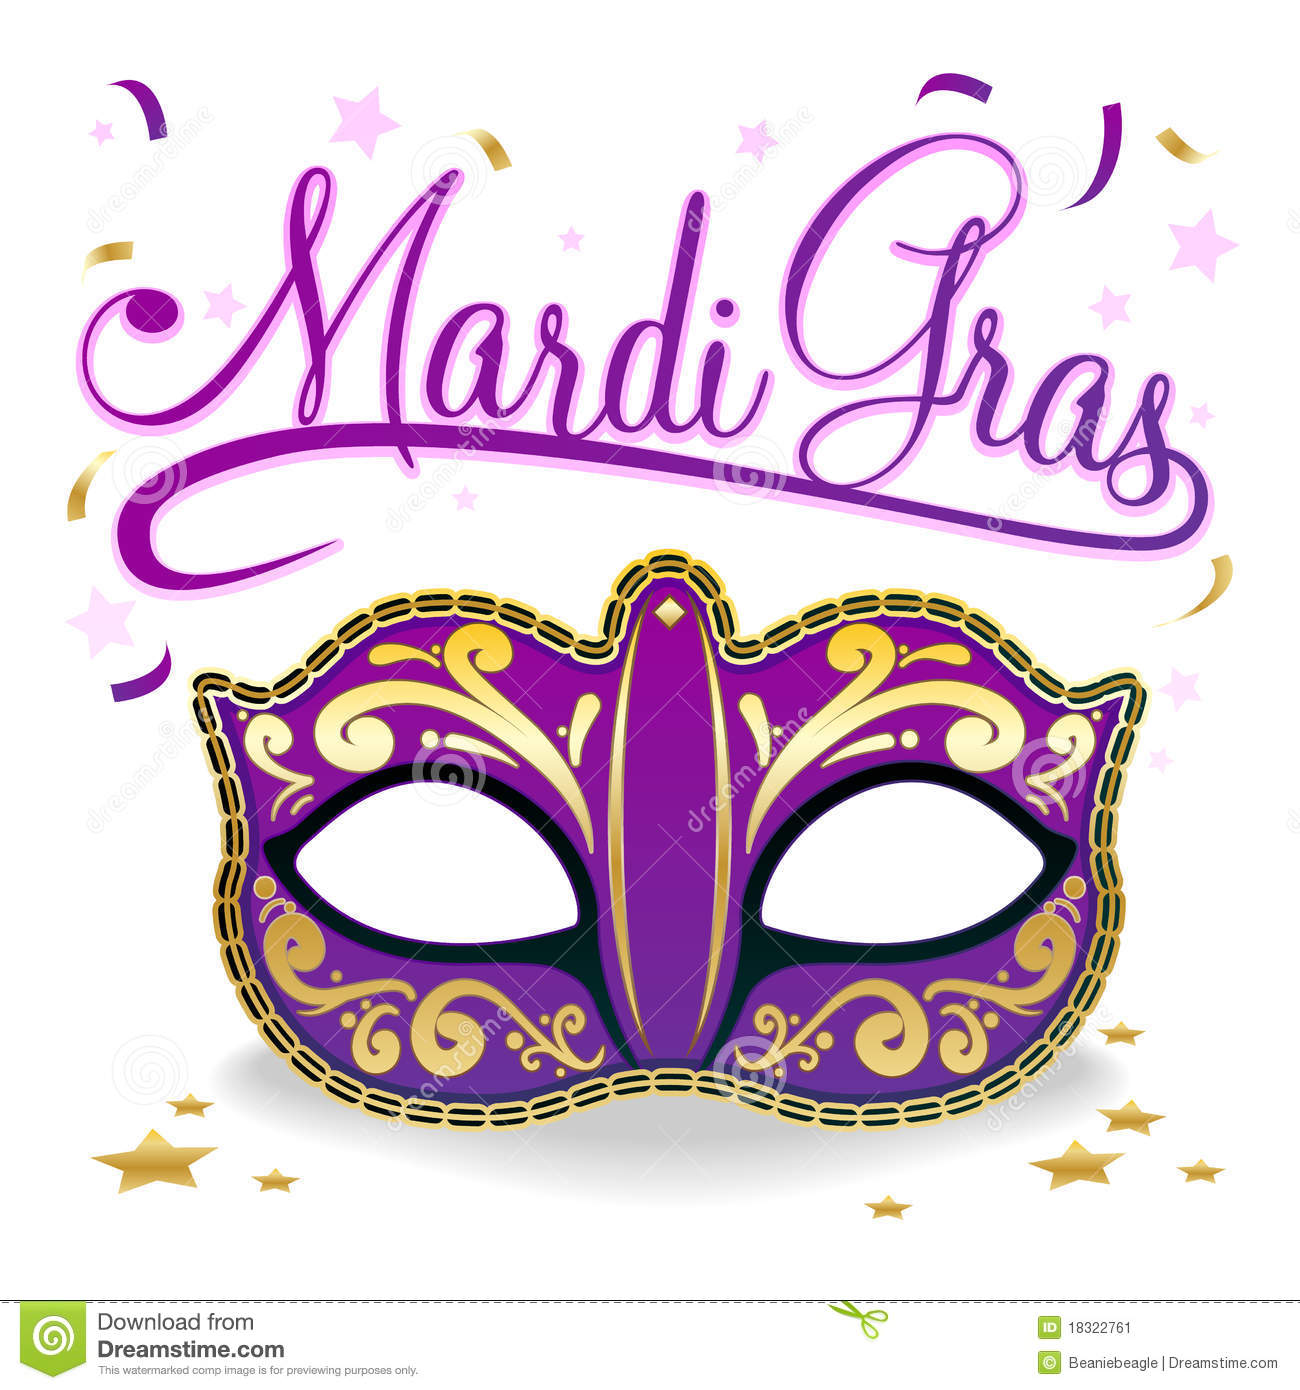 picture What celebrating Mardi Gras in New Orleans is really like